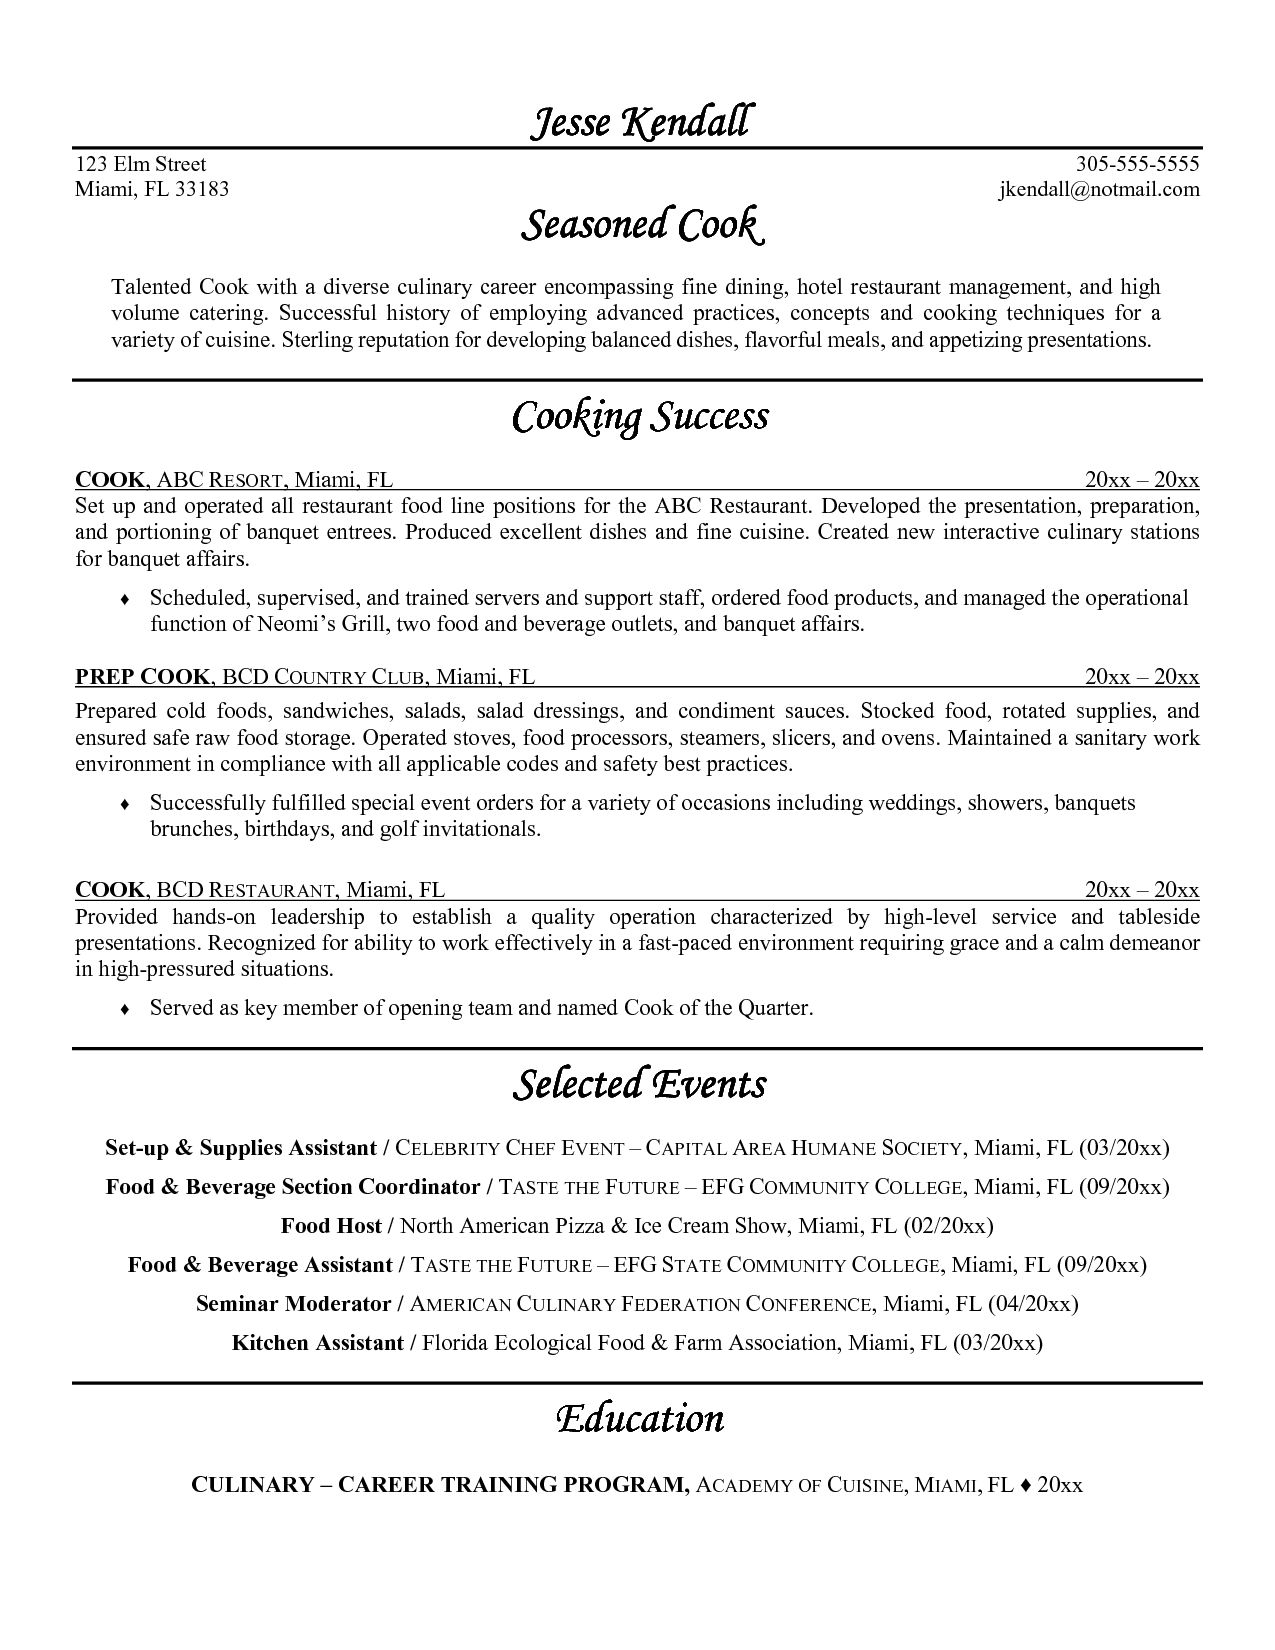 Sample Resume For Cook Position Custom Head Chef Resume Samples Hospitality Templates Free Sample Format .